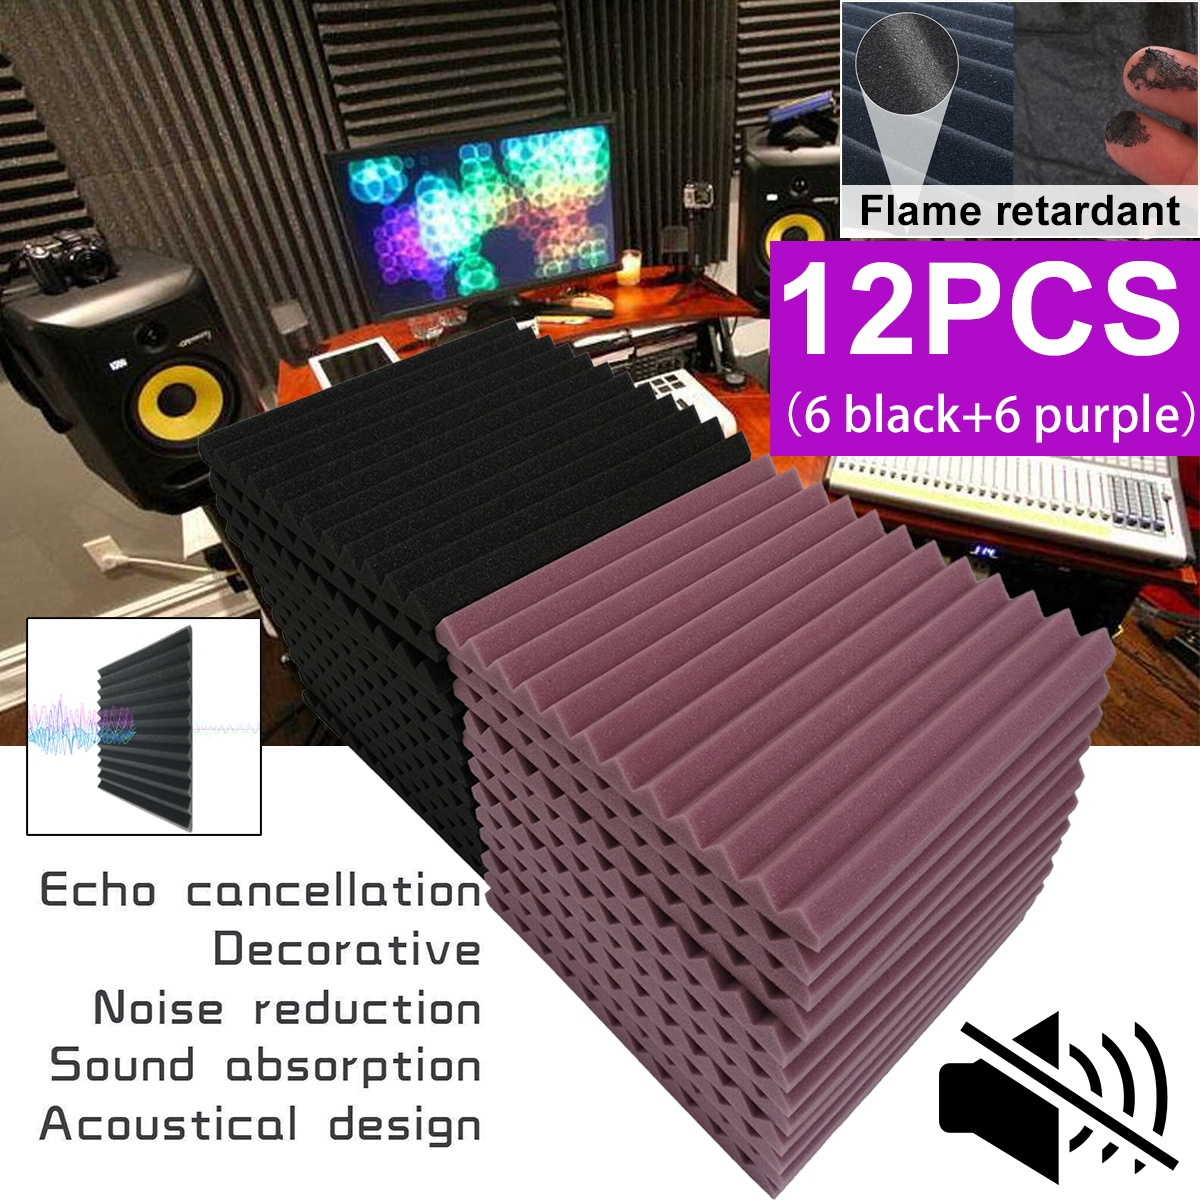 "12PCS 1.2X12X12"" Acoustic Soundproof Foam Wedge Studio Soundproofing Wall Panels Tiles"